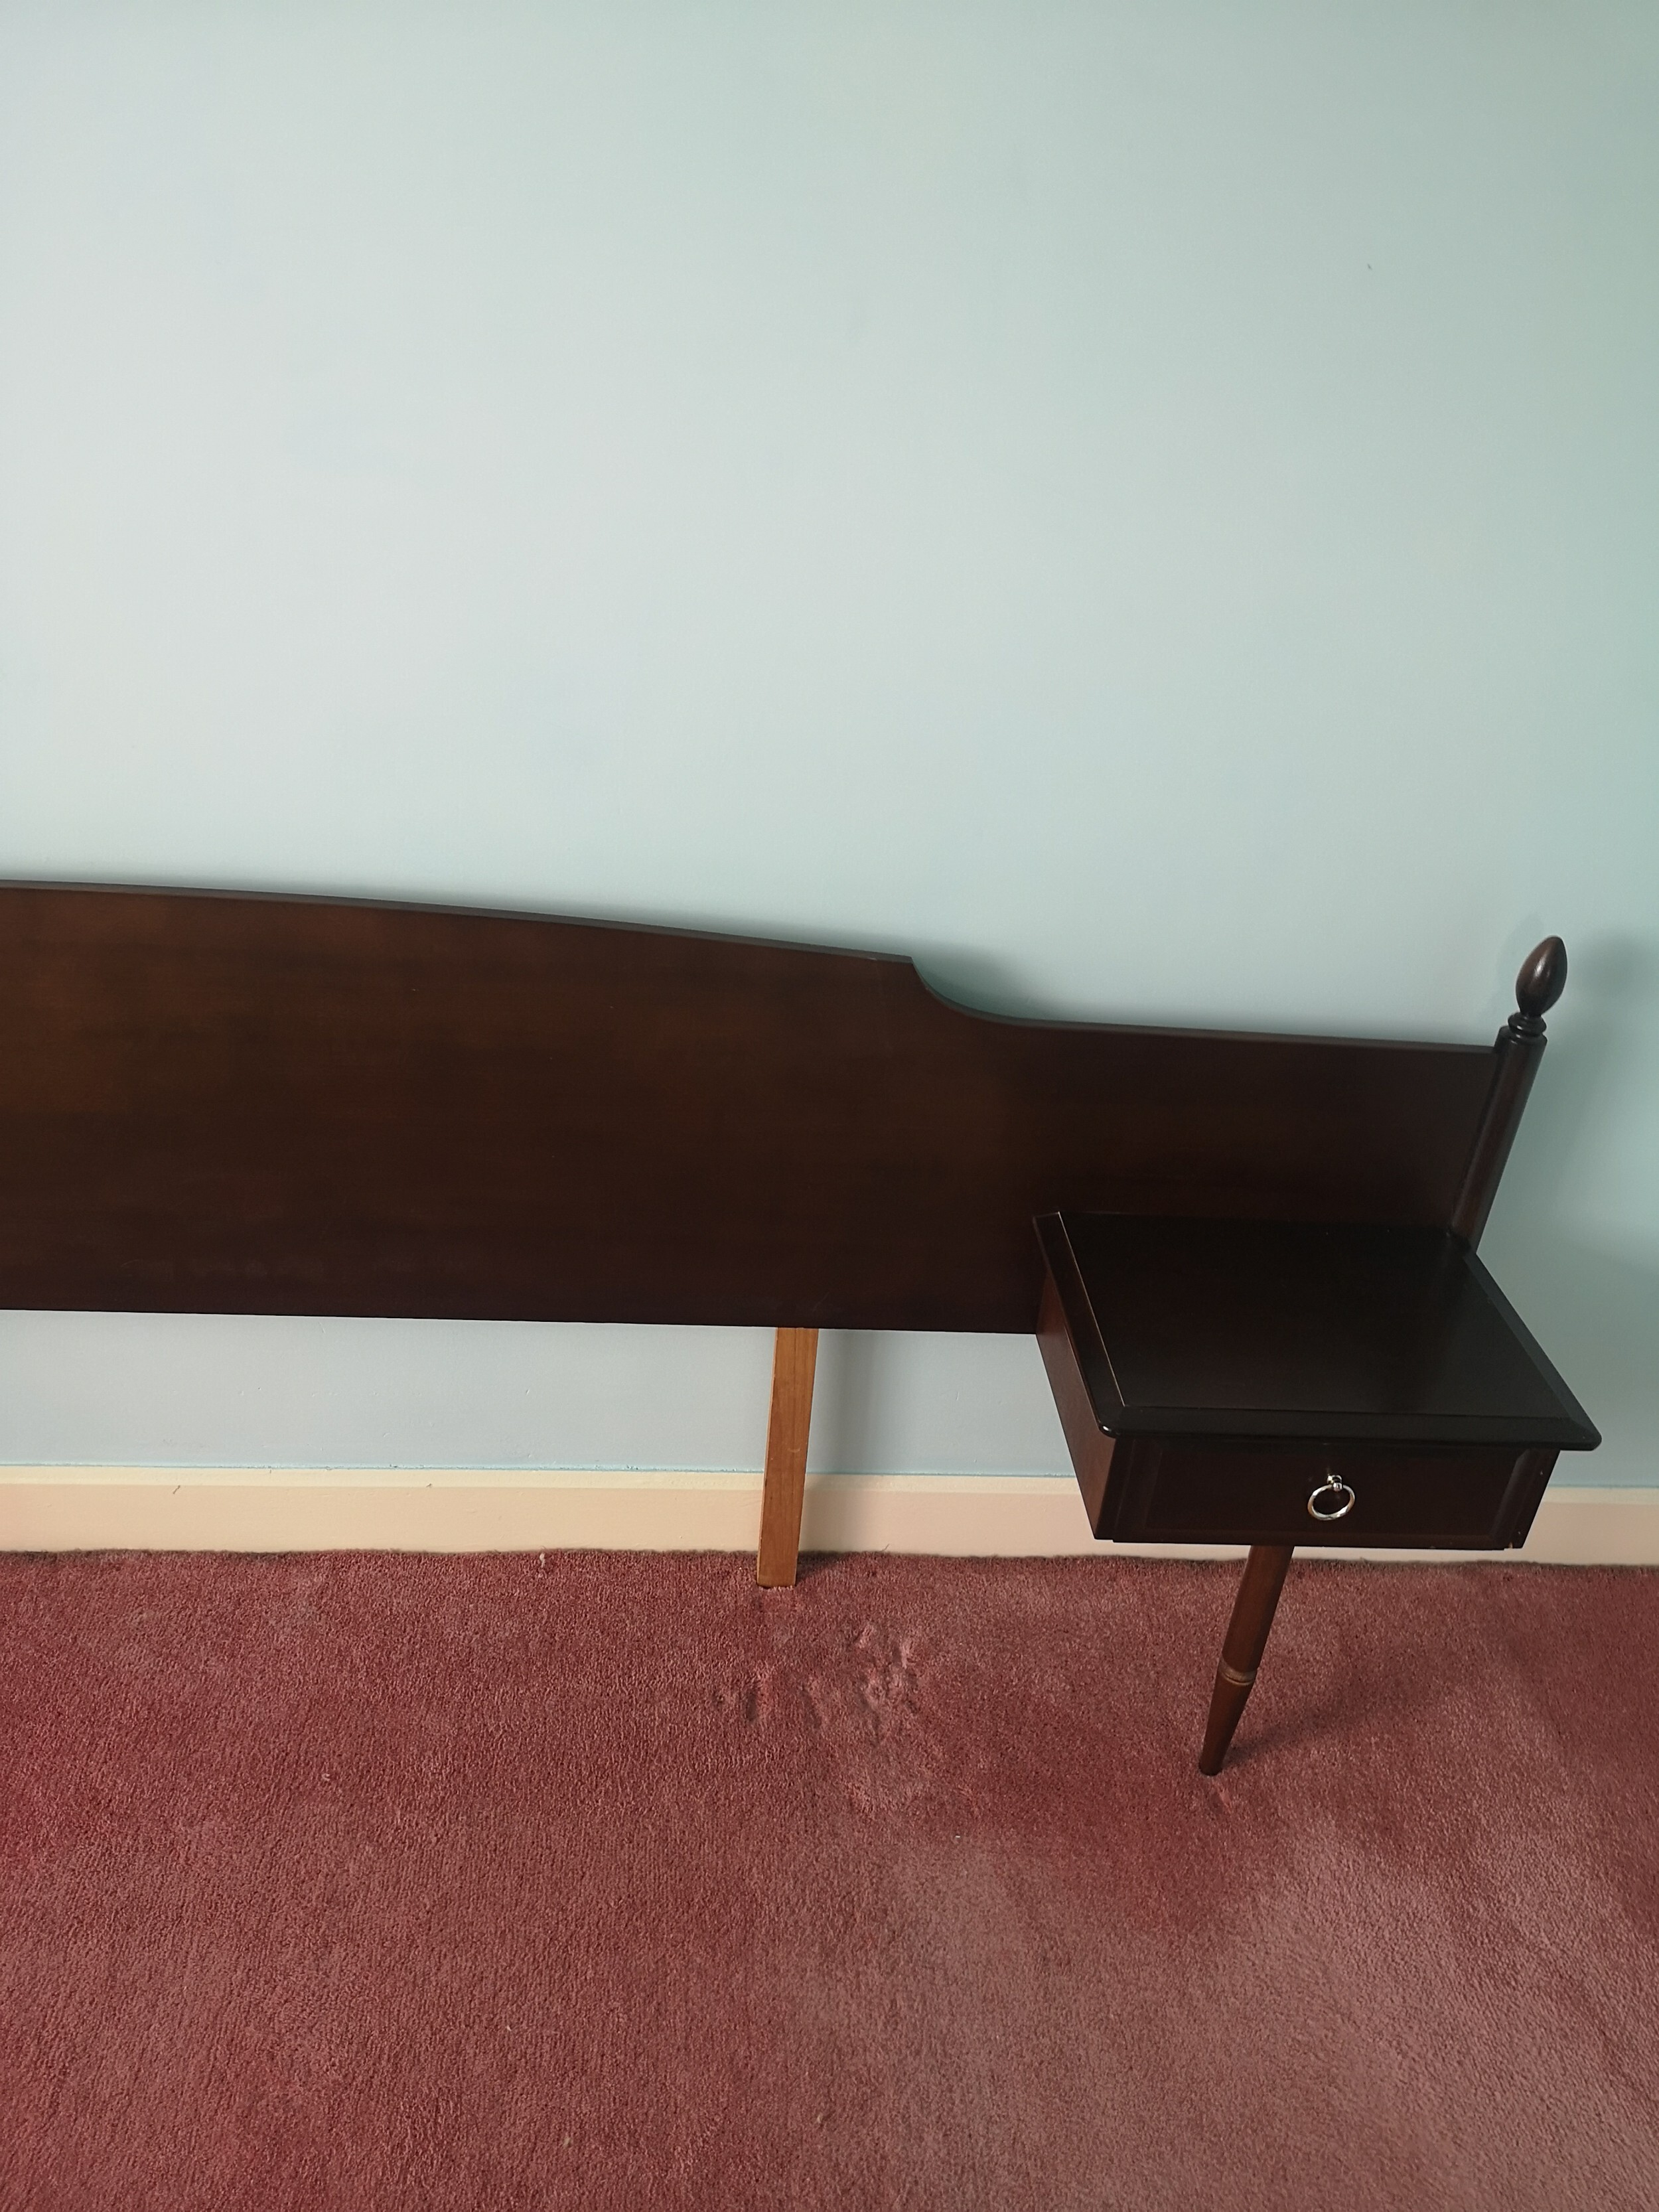 Stag minstrel head board with fitted cabinets. - Image 2 of 2